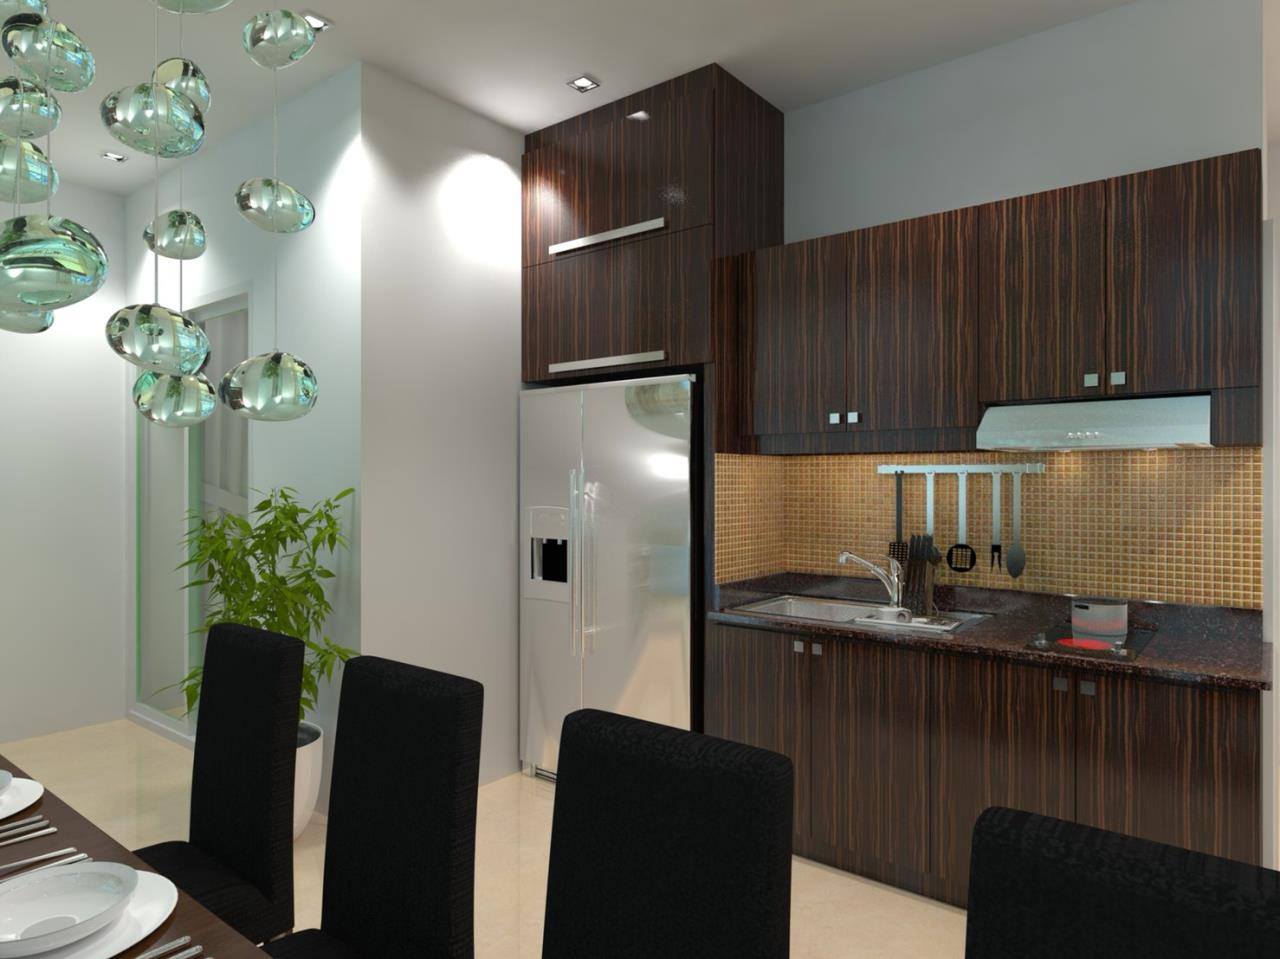 Signature Realty ( Thailand ) Co Ltd Agency's Furnished 2bedroom 40 sq.m condo floor 11-20 at The Grand Jomtein Beach Pattaya 26